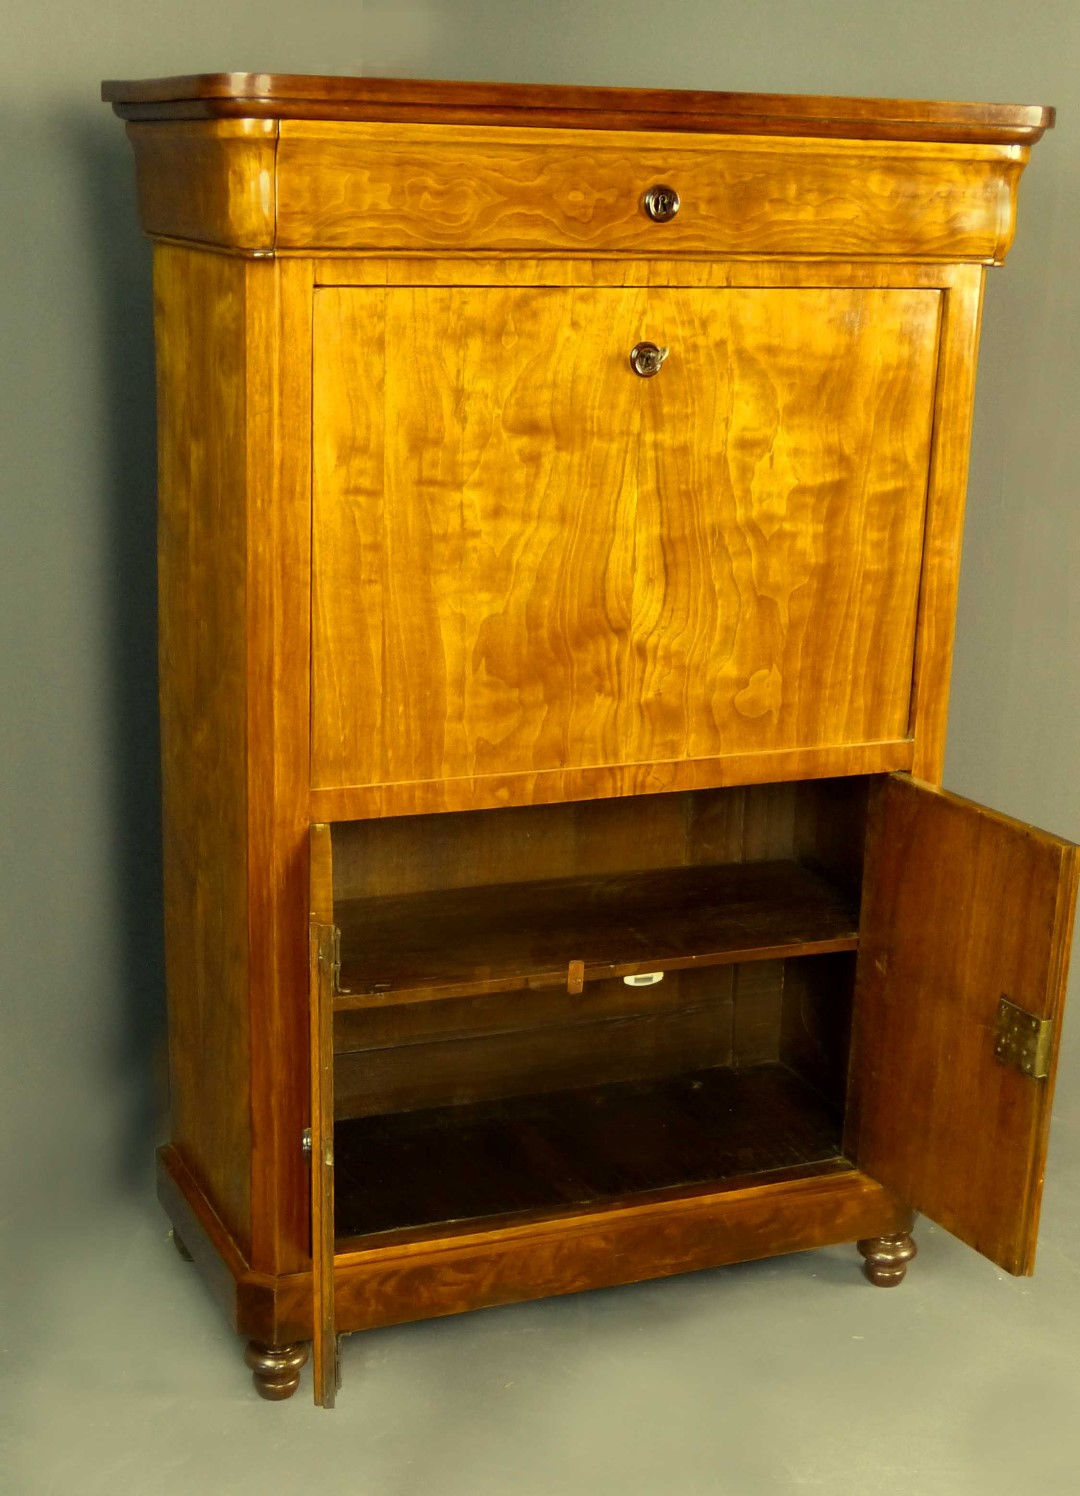 Antique Furniture Antique Cupboards Antique Tables Antique Comfortable Antique Chairs Antique Bookcases Antique Sofas Antiquities